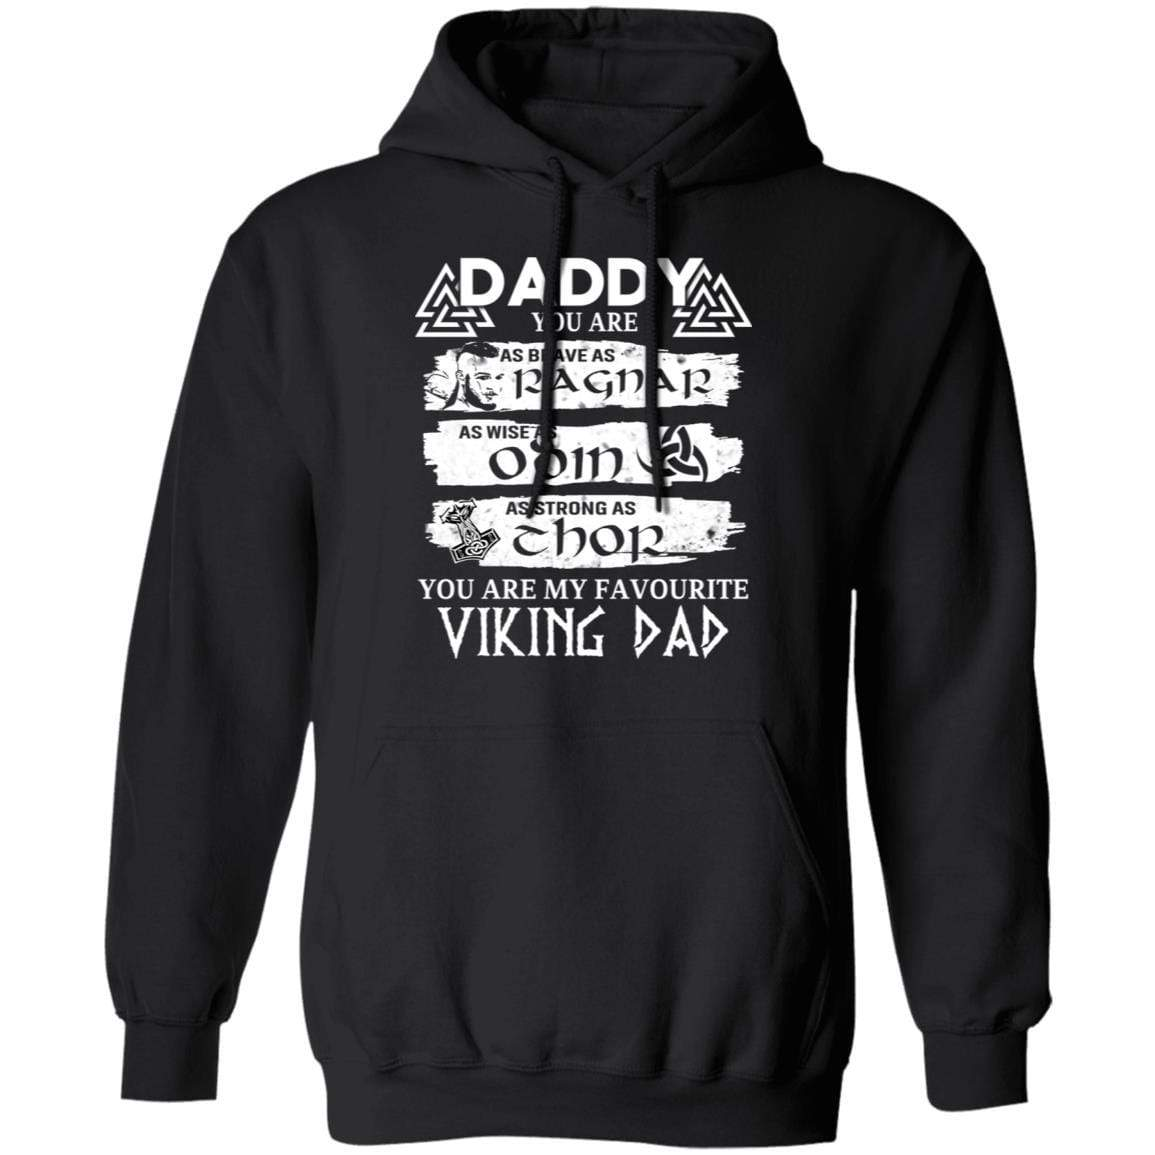 Daddy You Are As Brave As Ragnar As Wise As Odin As Strong As Thor Viking Dad T-Shirts, Hoodies 541-4740-86894539-23087 - Tee Ript